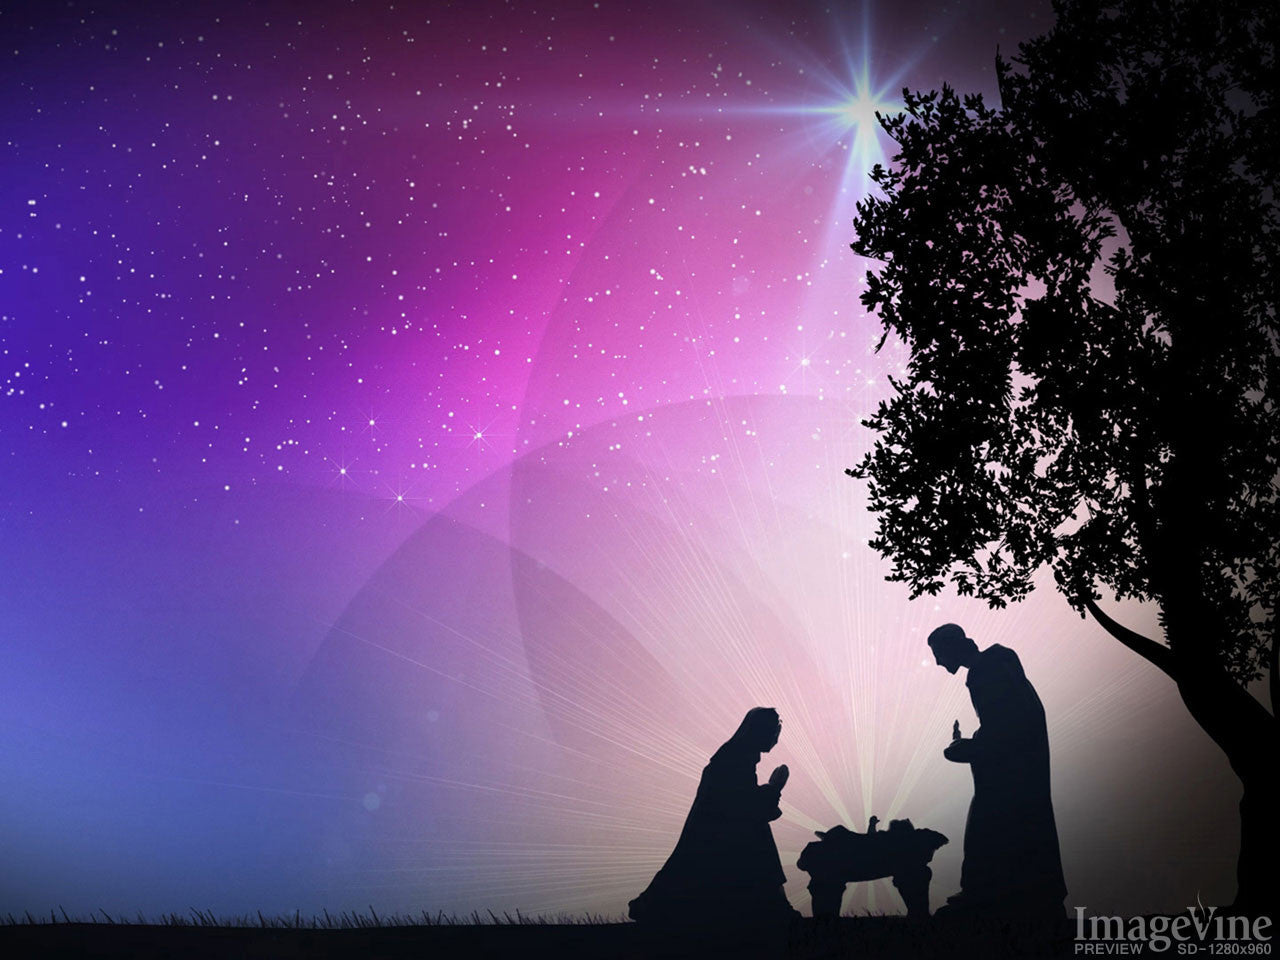 The Christmas Story Backgrounds Imagevine